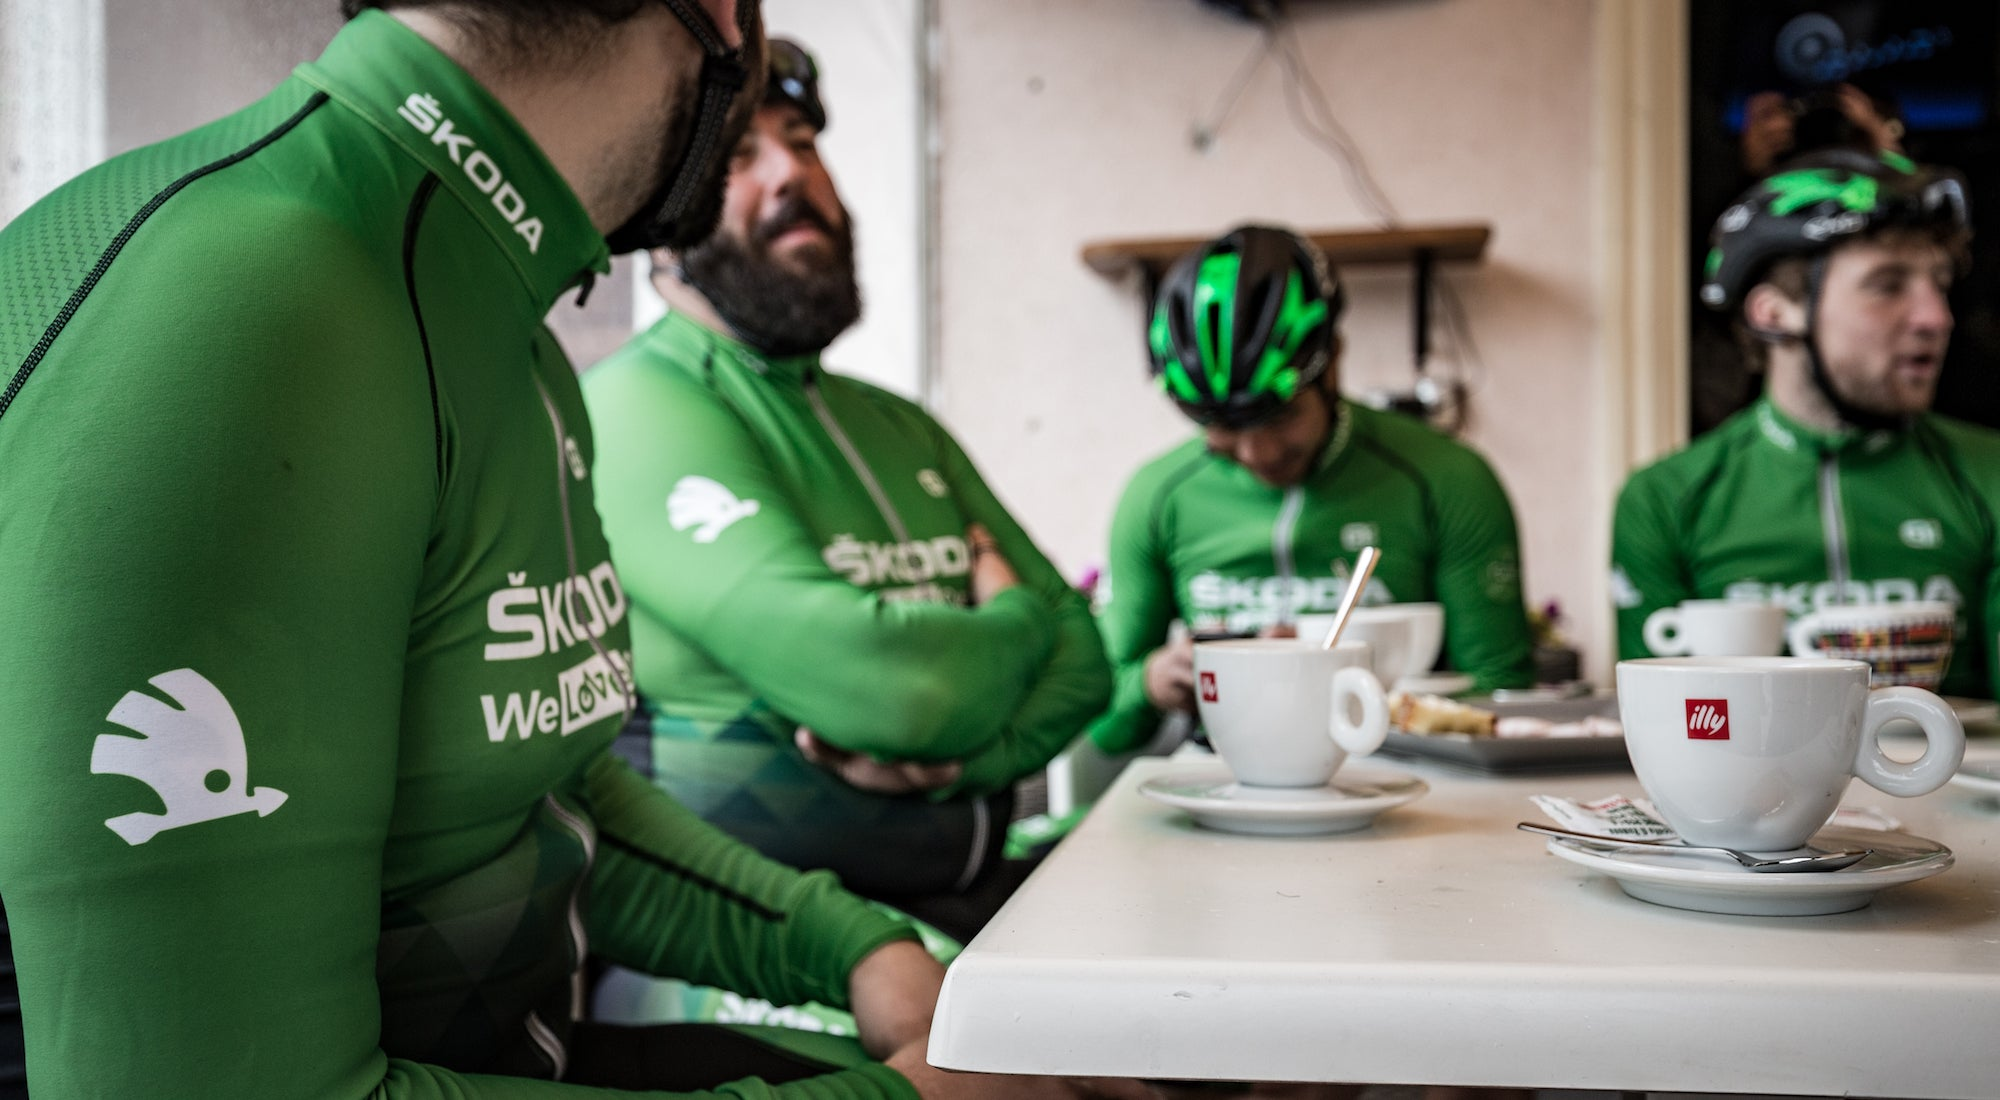 Clubs SKODA We Love Cycling